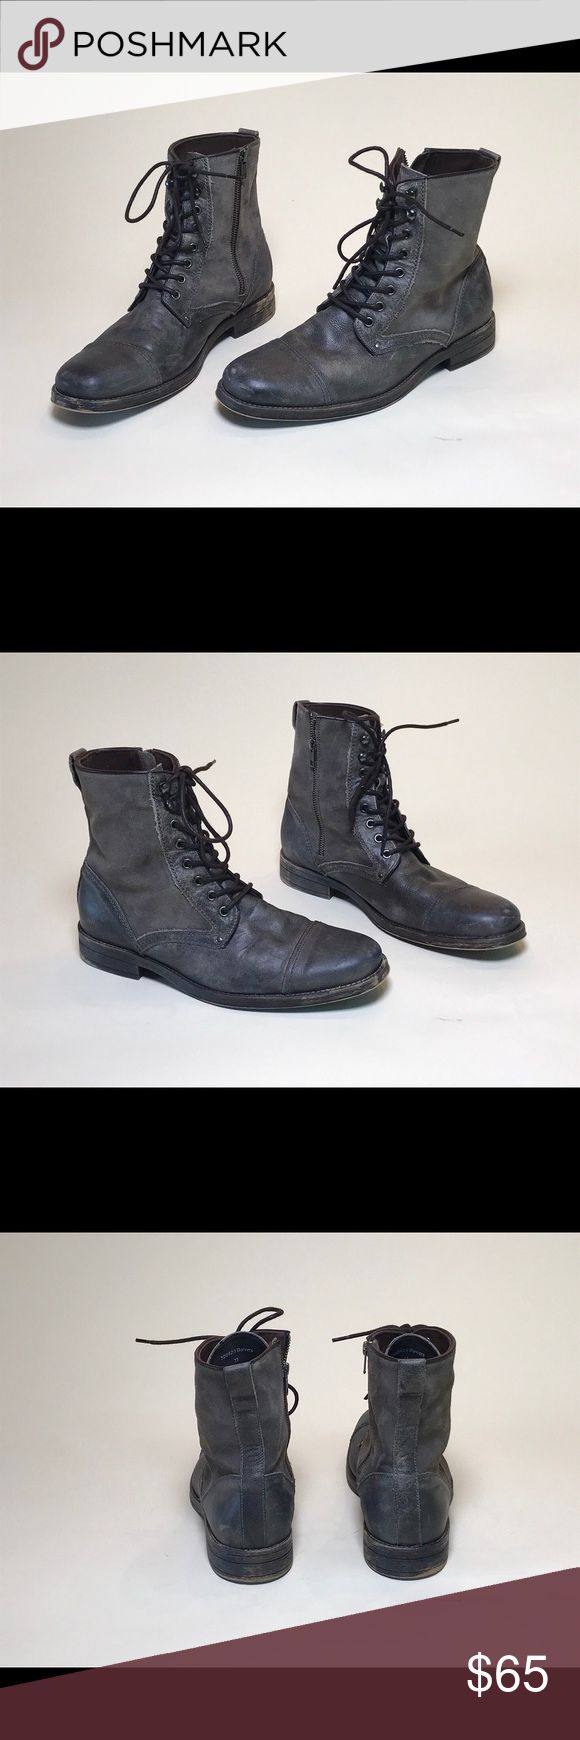 "Men's Aston Grey ""Bowers"" Grey Cap Tow Boot US 11 Men's Aston Grey ""Bowers"" Grey Cap Tow Boot US 11 Aston Grey Shoes Boots"